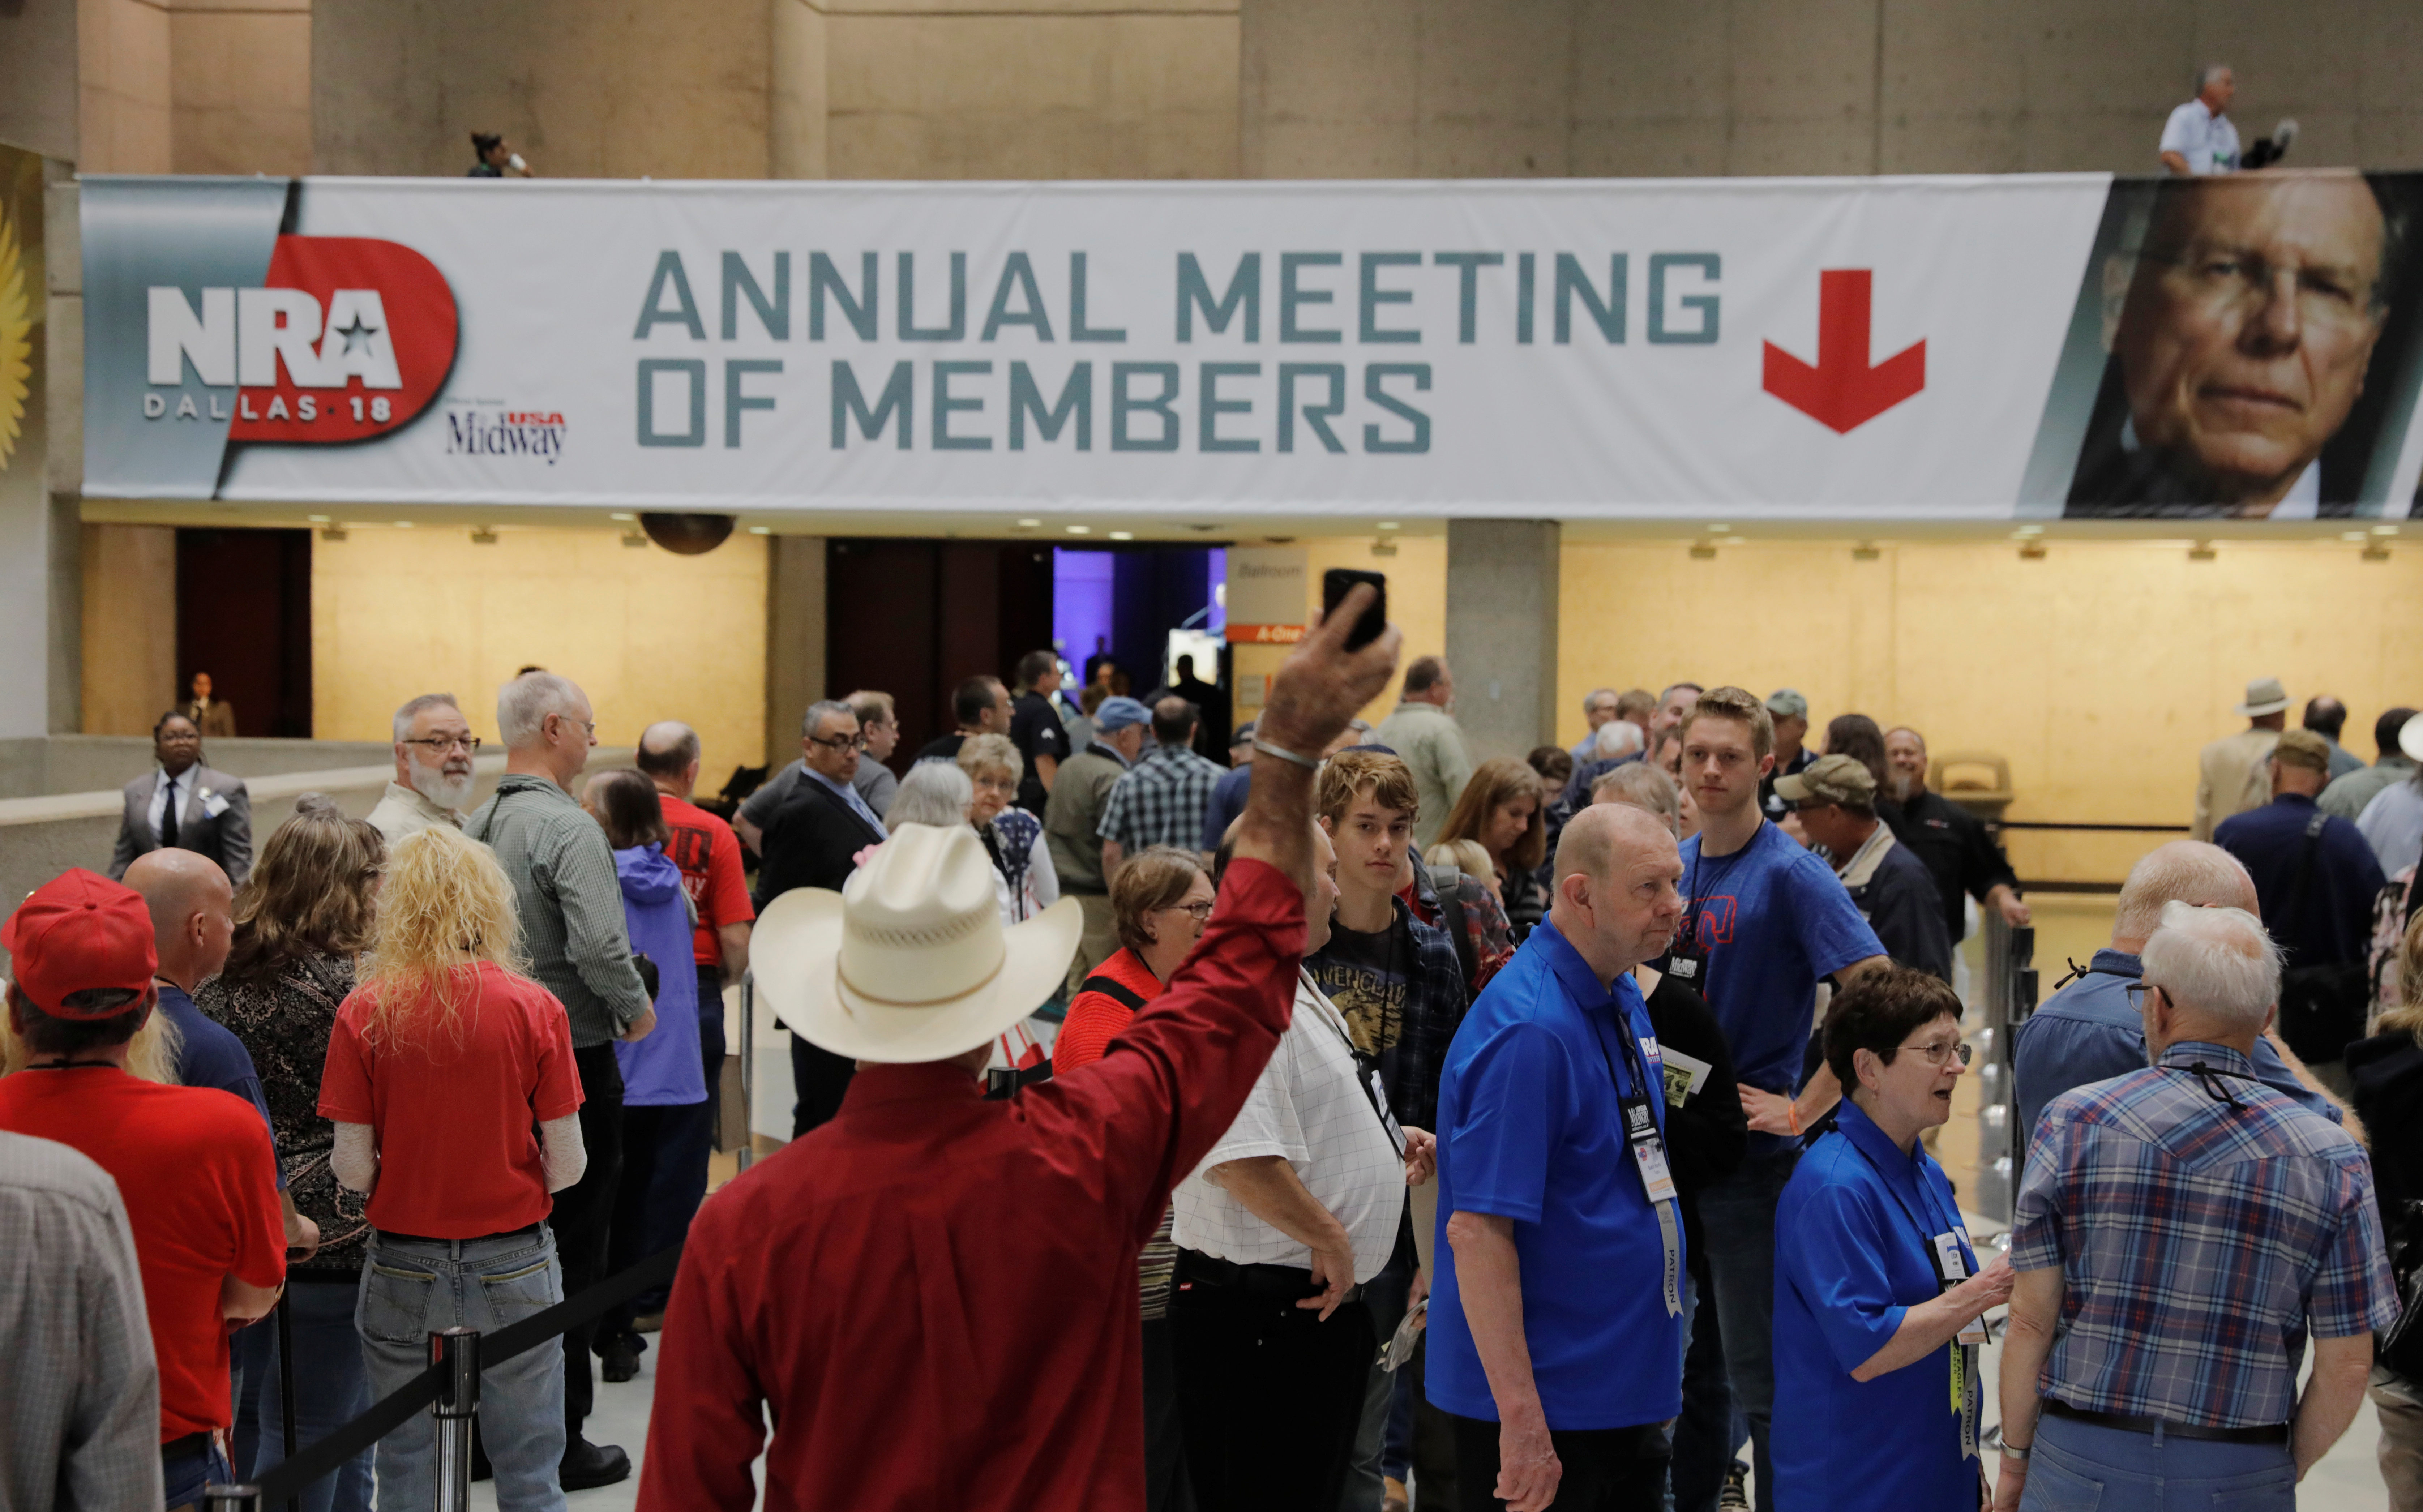 Attendees wait to enter the convention hall where the National Rifle Association (NRA) will hold its annual meeting in Dallas, Texas, U.S., May 4, 2018. REUTERS/Lucas Jackson - RC17F205C5A0